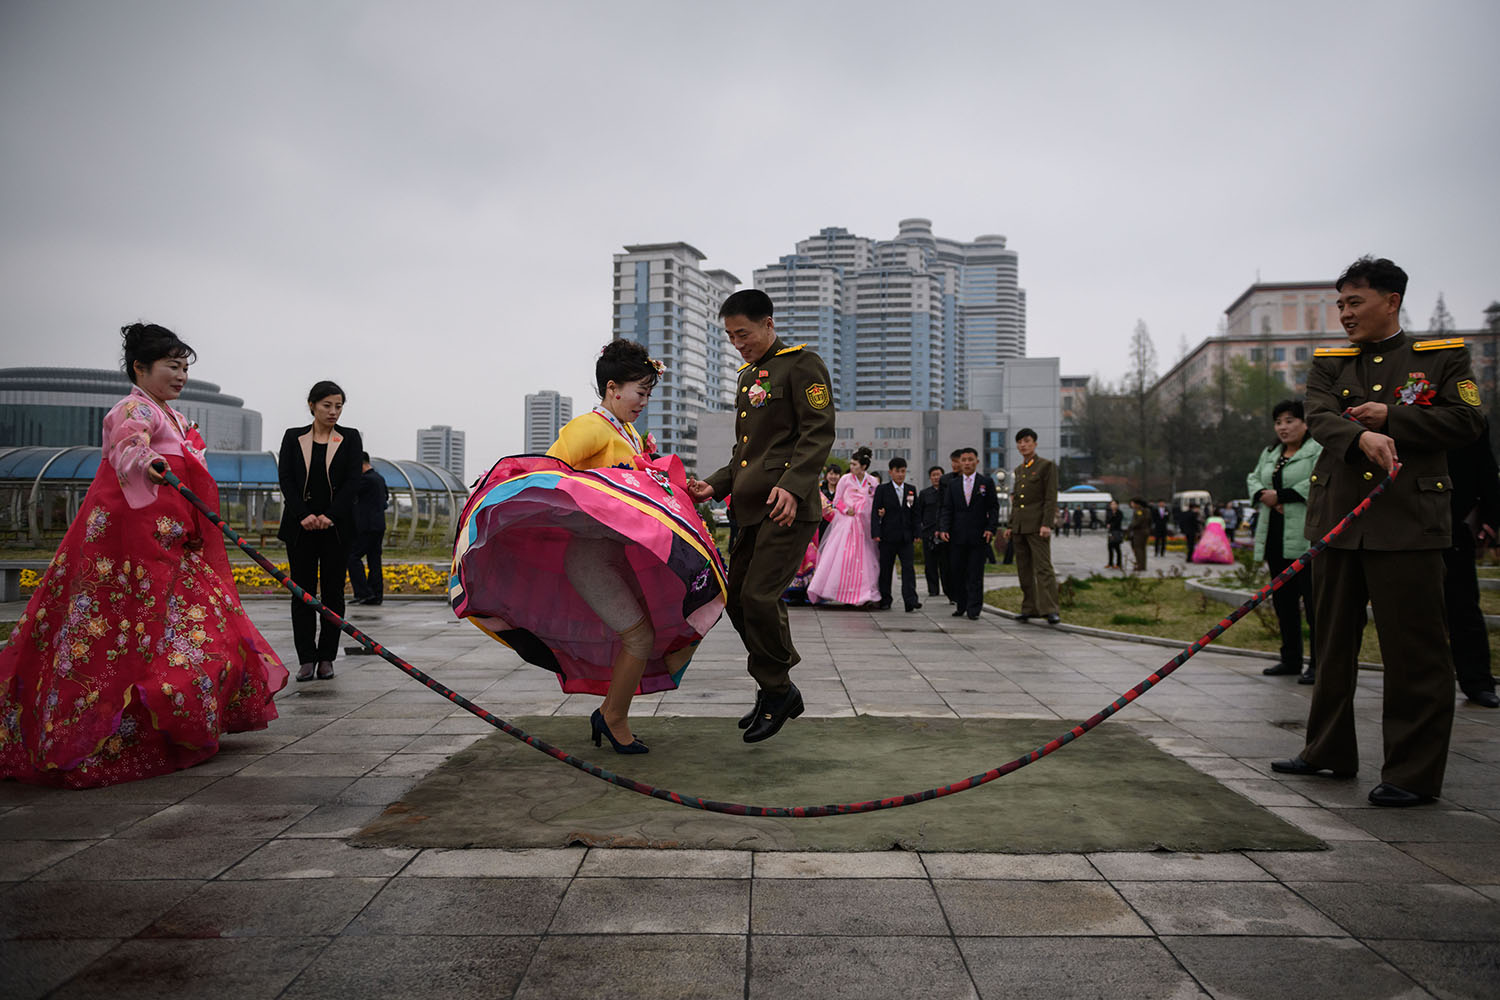 A bride and groom jump over a rope during a wedding photo shoot at a park in Pyongyang, North Korea, on April 18. Ed Jones/AFP/Getty Images